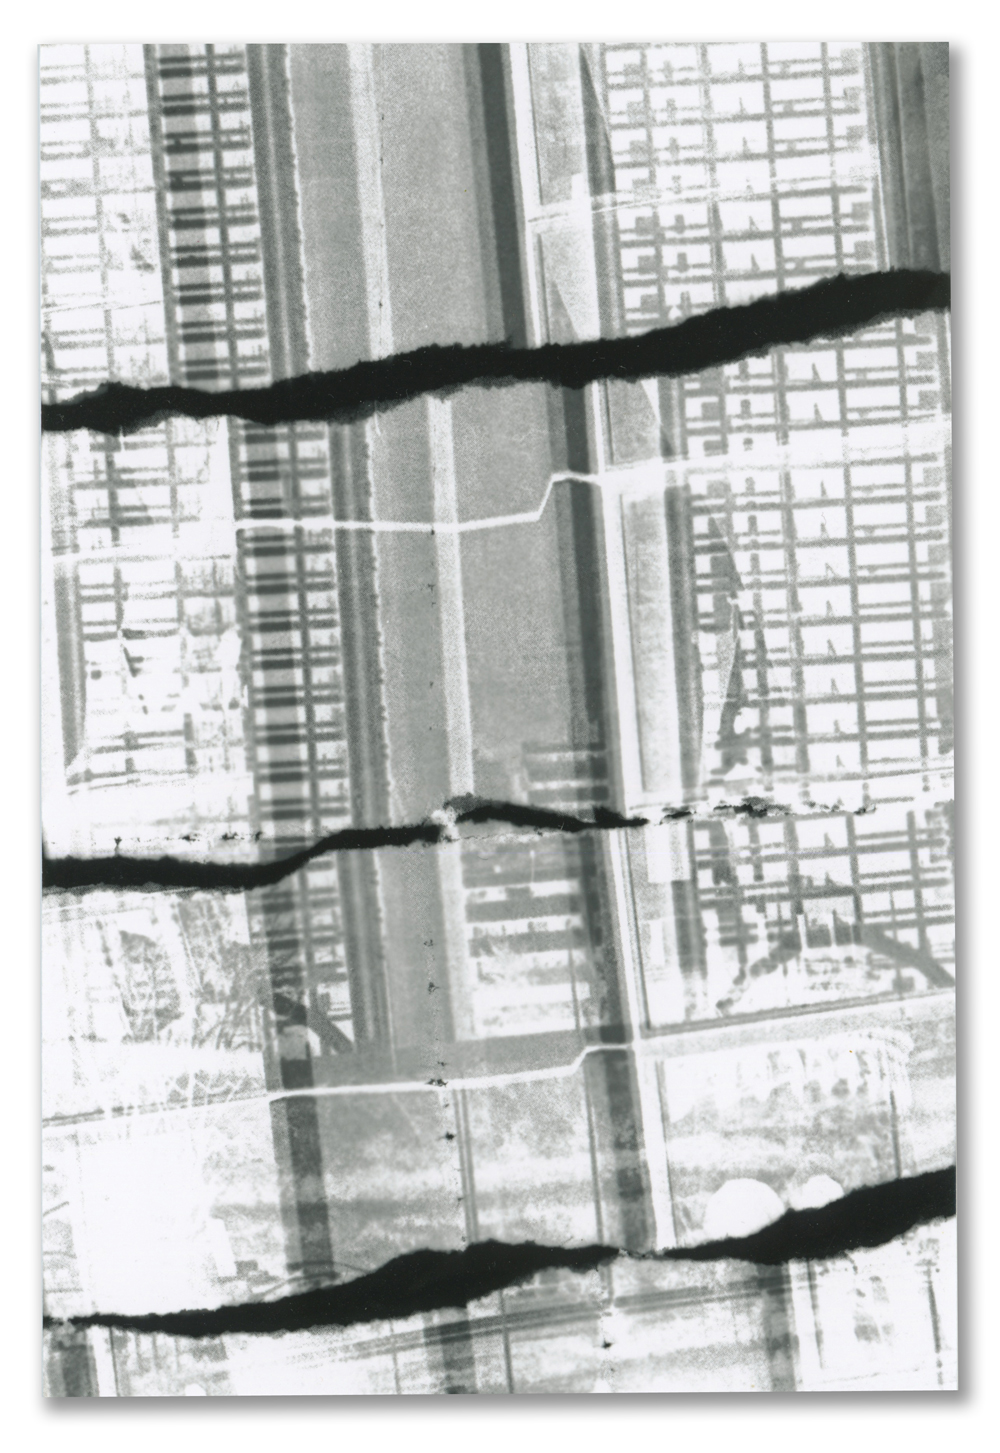 Ripping Building Photogram Postcard, 2012